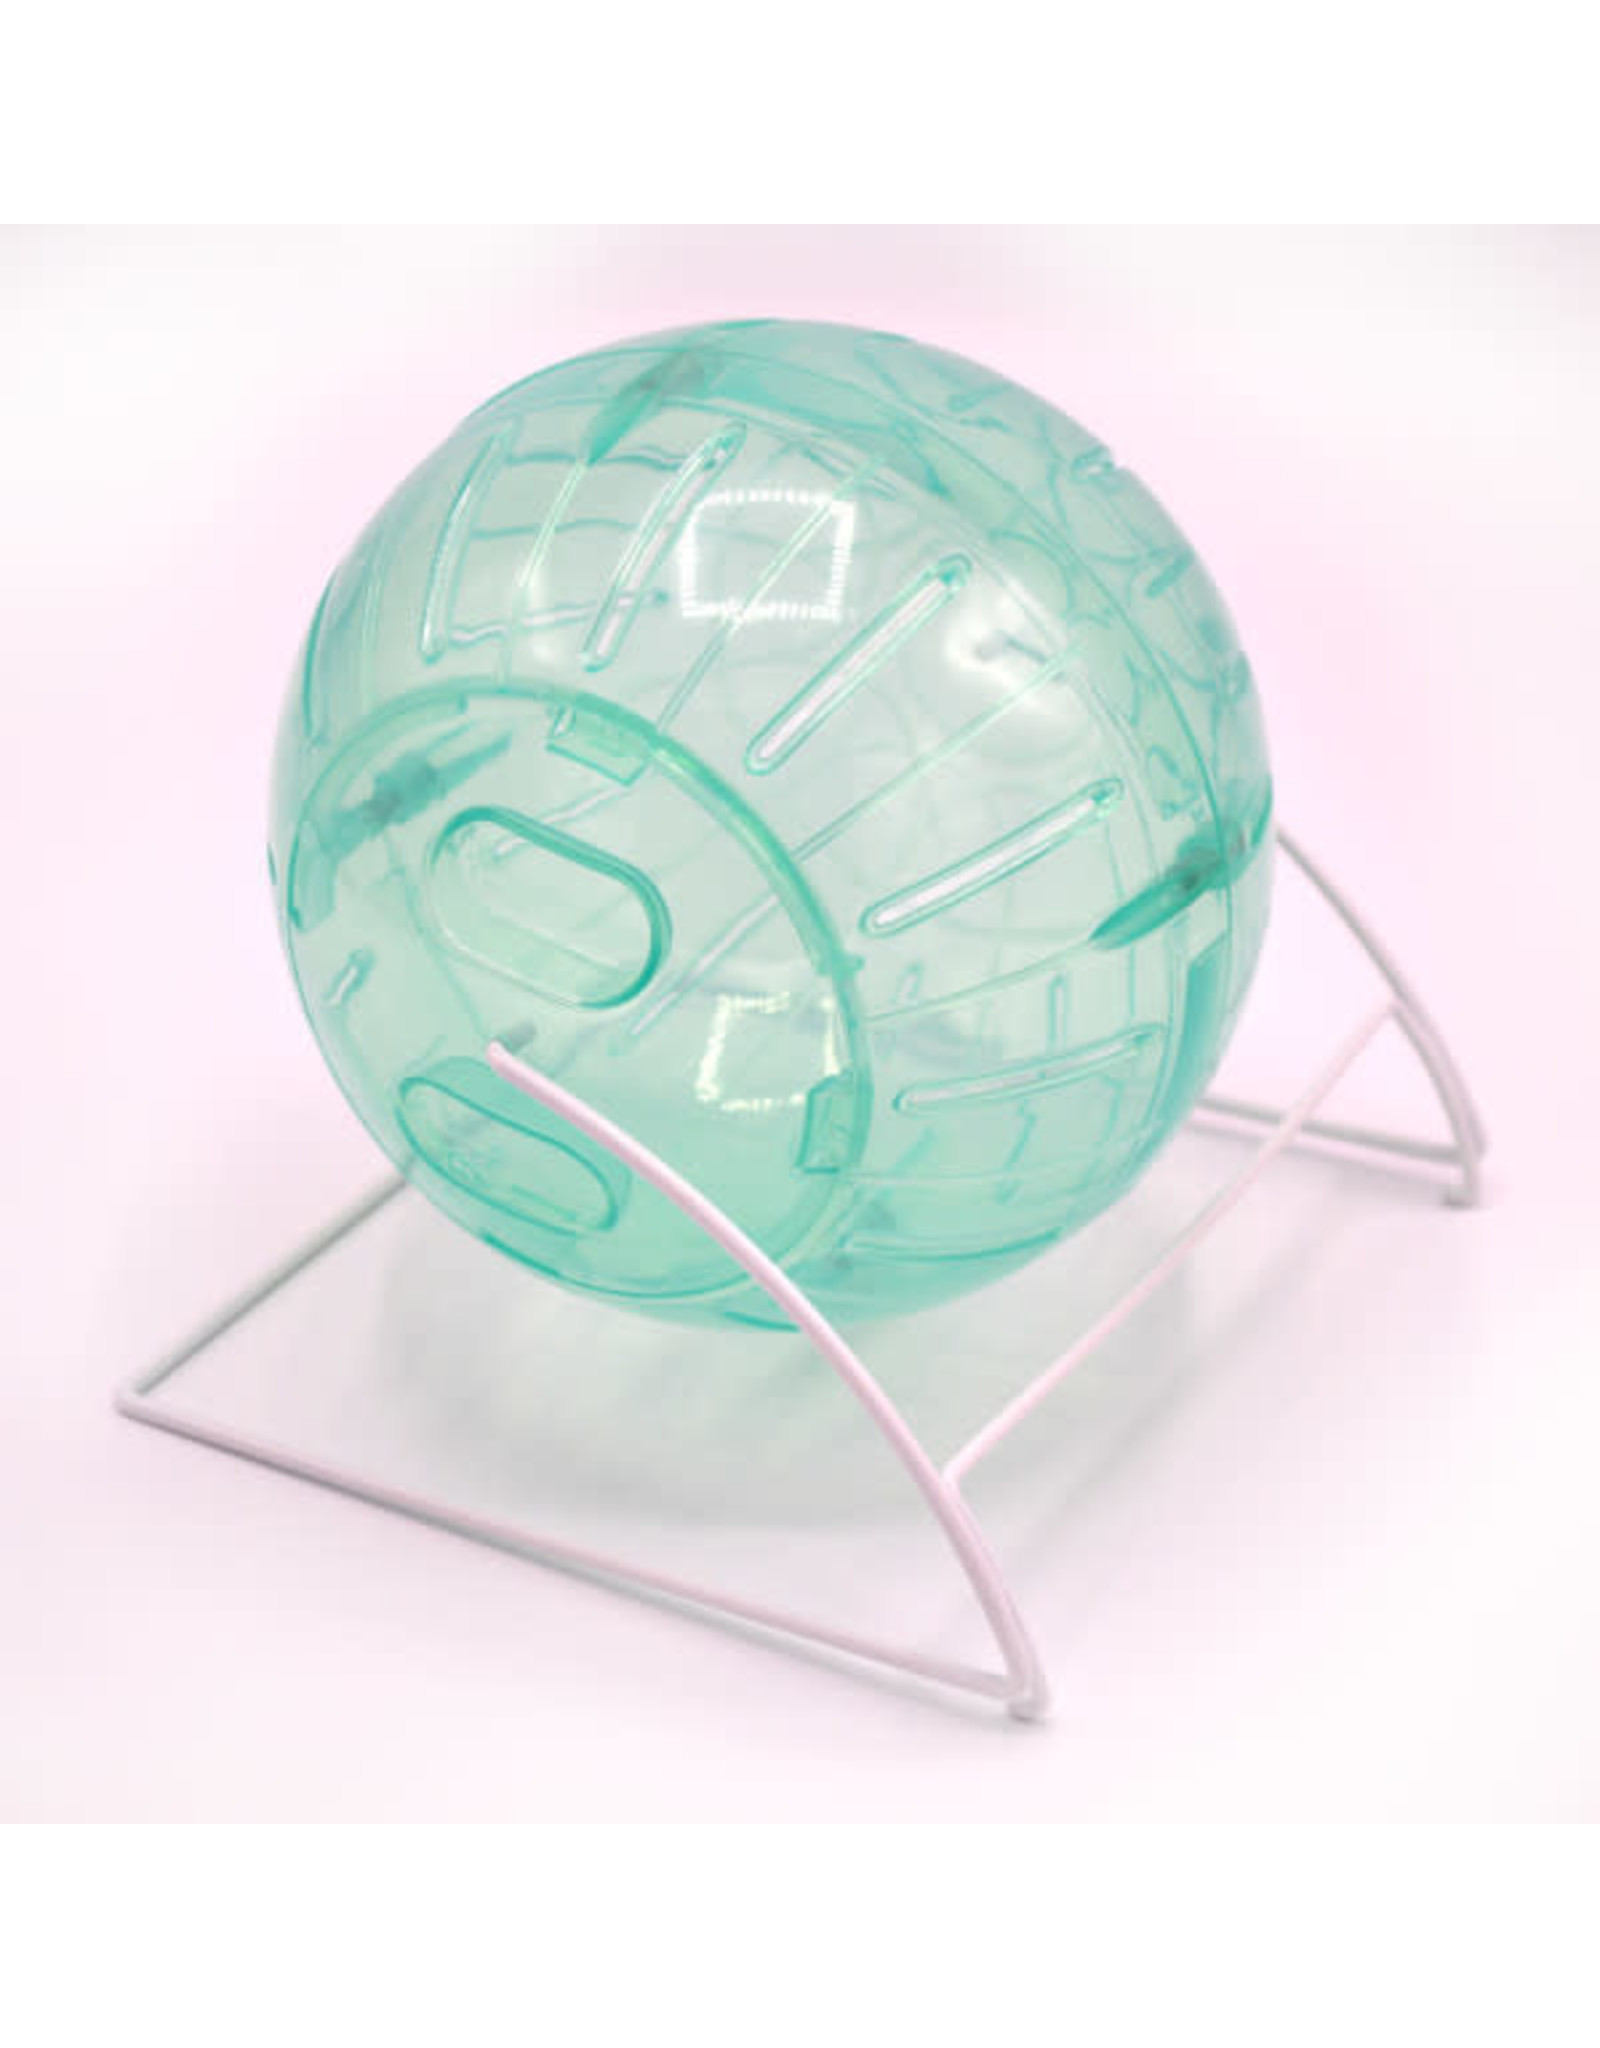 Oxbow Oxbow Enriched Life 2 in 1 Fitness Ball